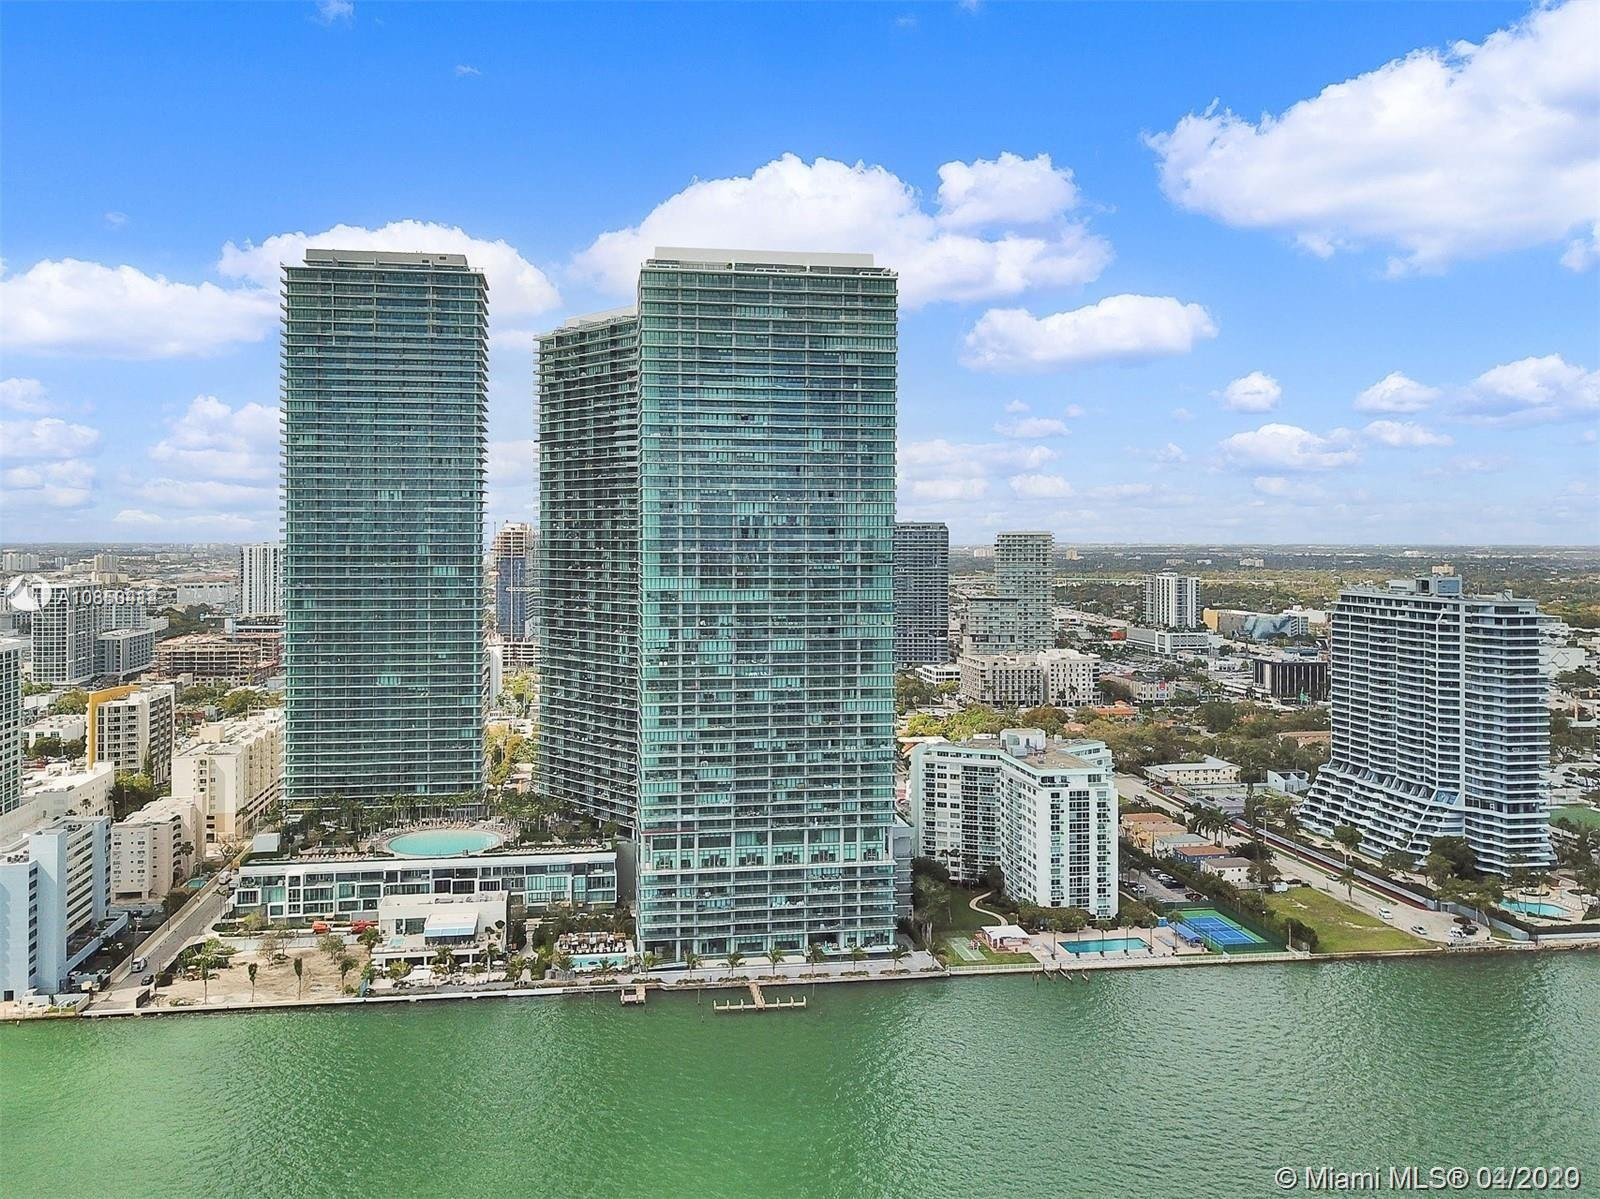 Stunning 2-bed/2-bath unit with private elevator and foyer. Finished with top-of-the-line white cala